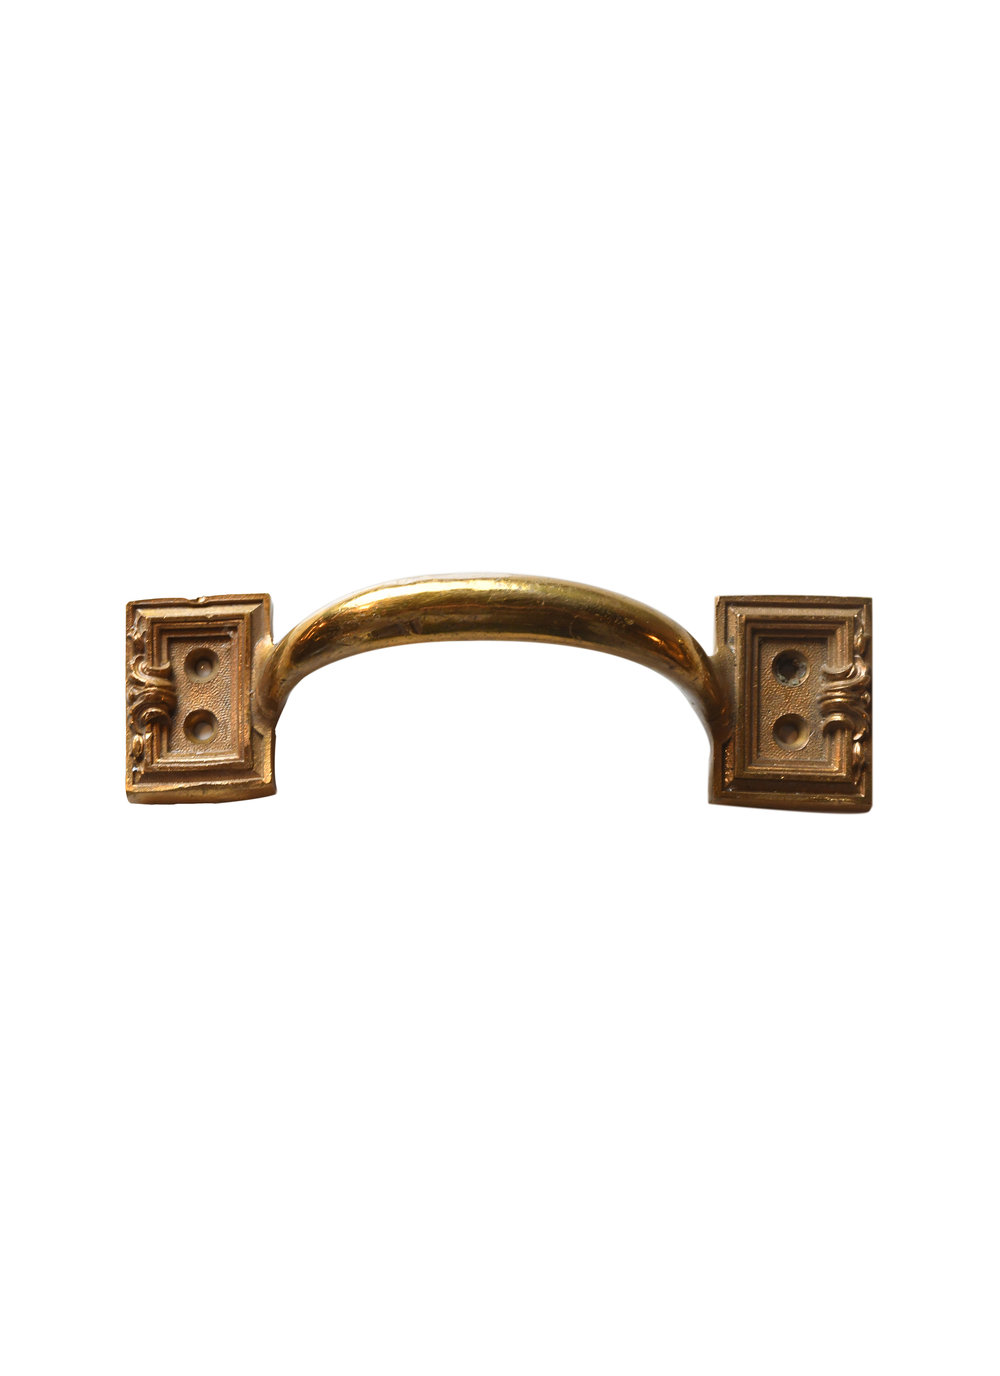 CAST BRASS DRAWER PULL AA# H20171   4 available $38.00 each